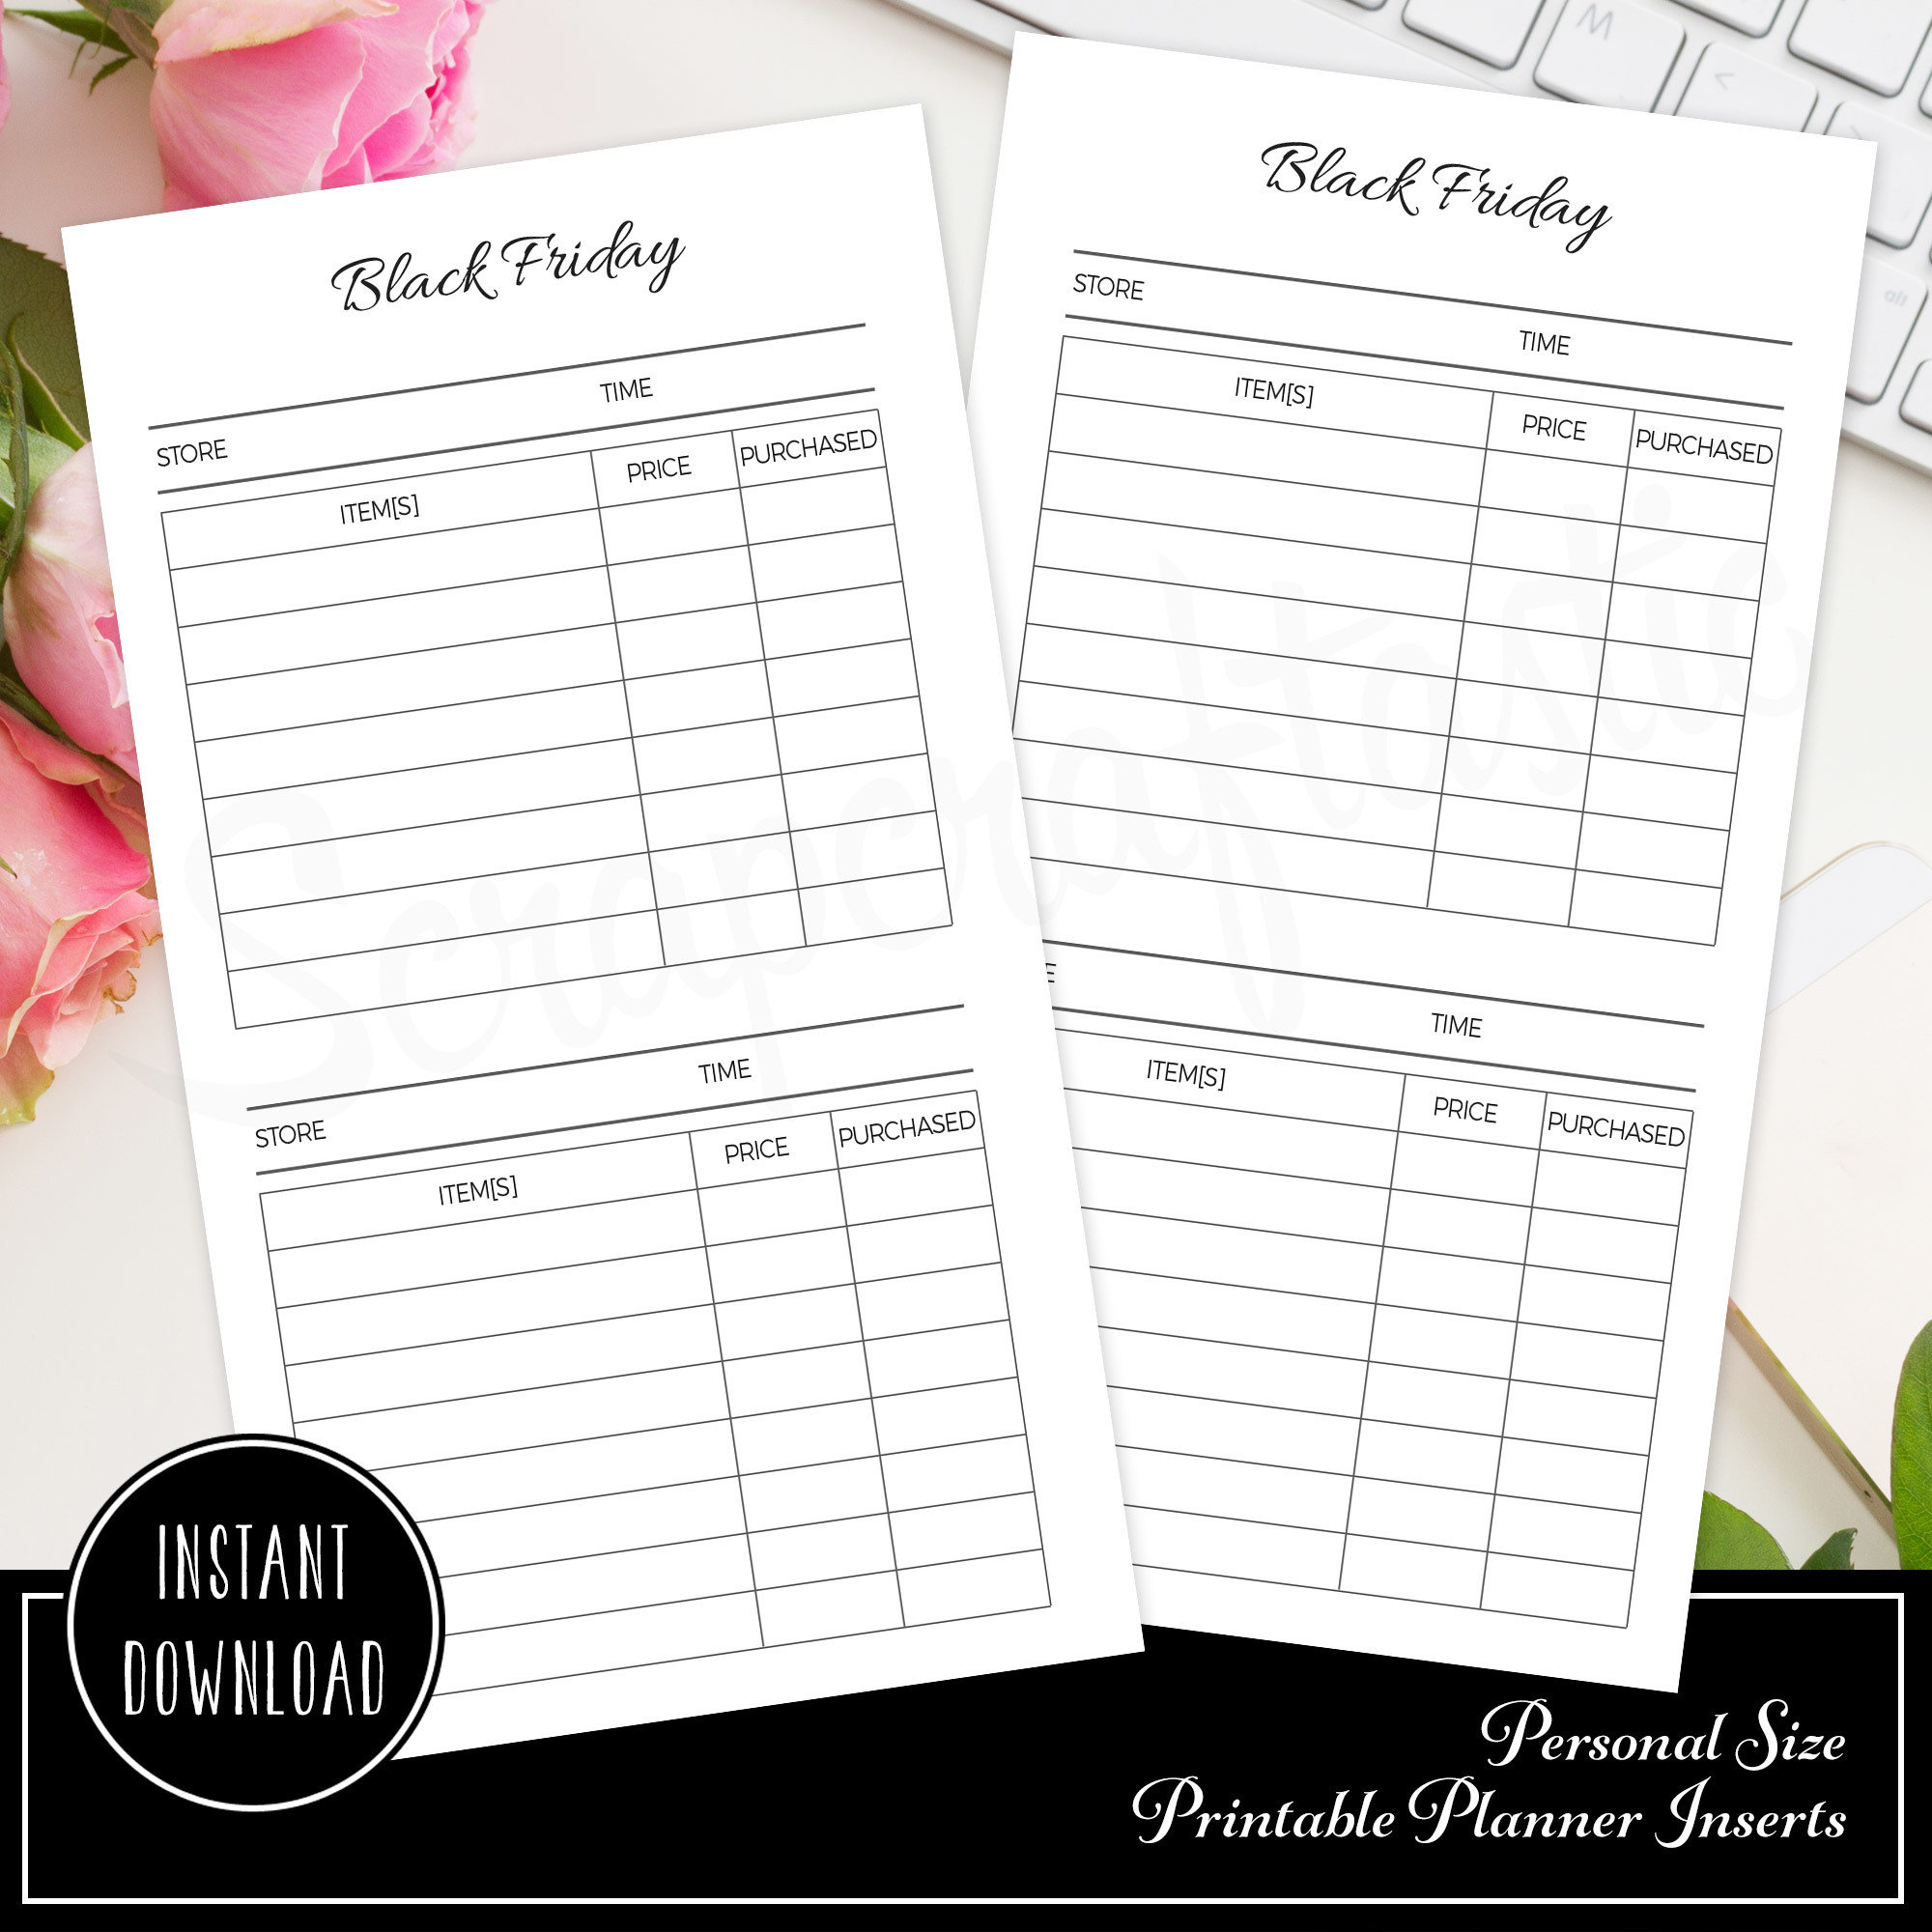 Black Friday Shopping Personal Size Ring Bound or Traveler's Notebook Printable Planner Inserts 00239